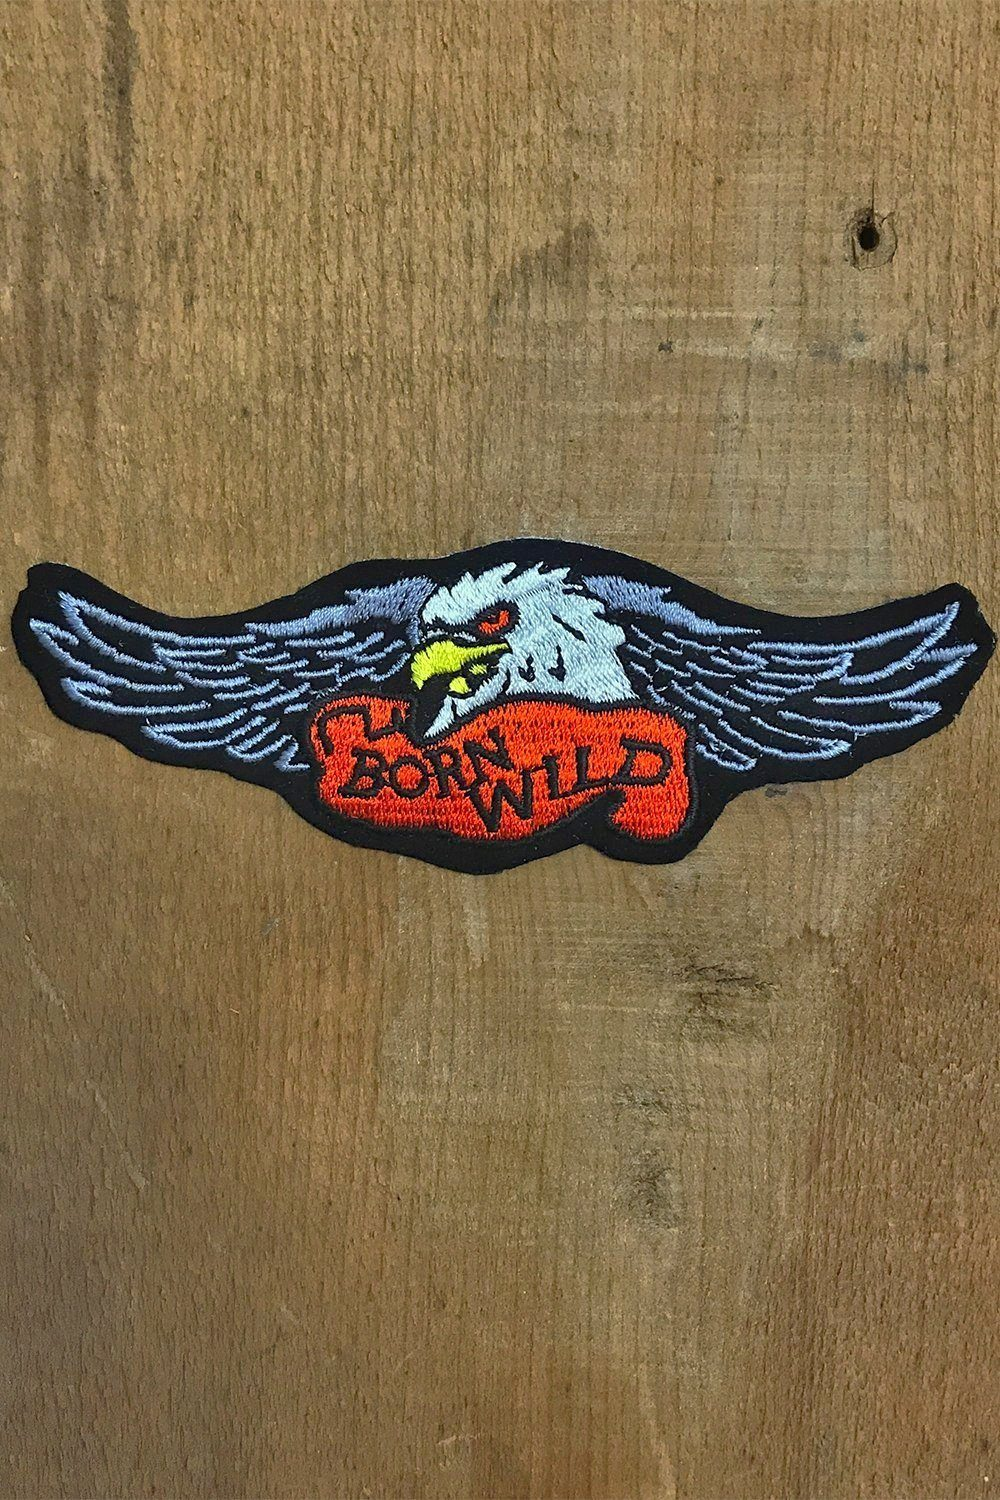 Born Wild Embroidered Biker Patch, Patches/Pins, BACKBITE, BACKBITE